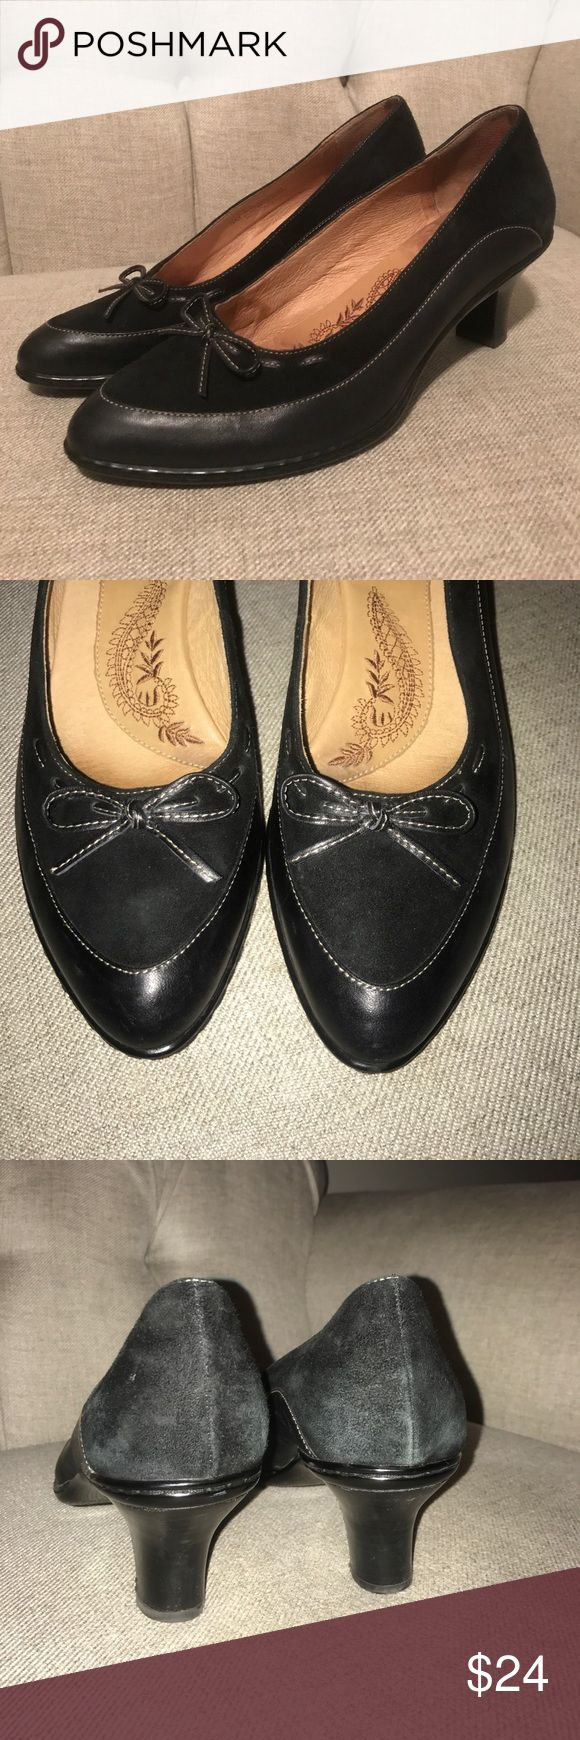 "Sofft Black leather and suede pumps Size 9 Sofft Black leather and suede pumps Size 9 Awesome work shoes nice condition 2"" heel Sofft Shoes Heels"